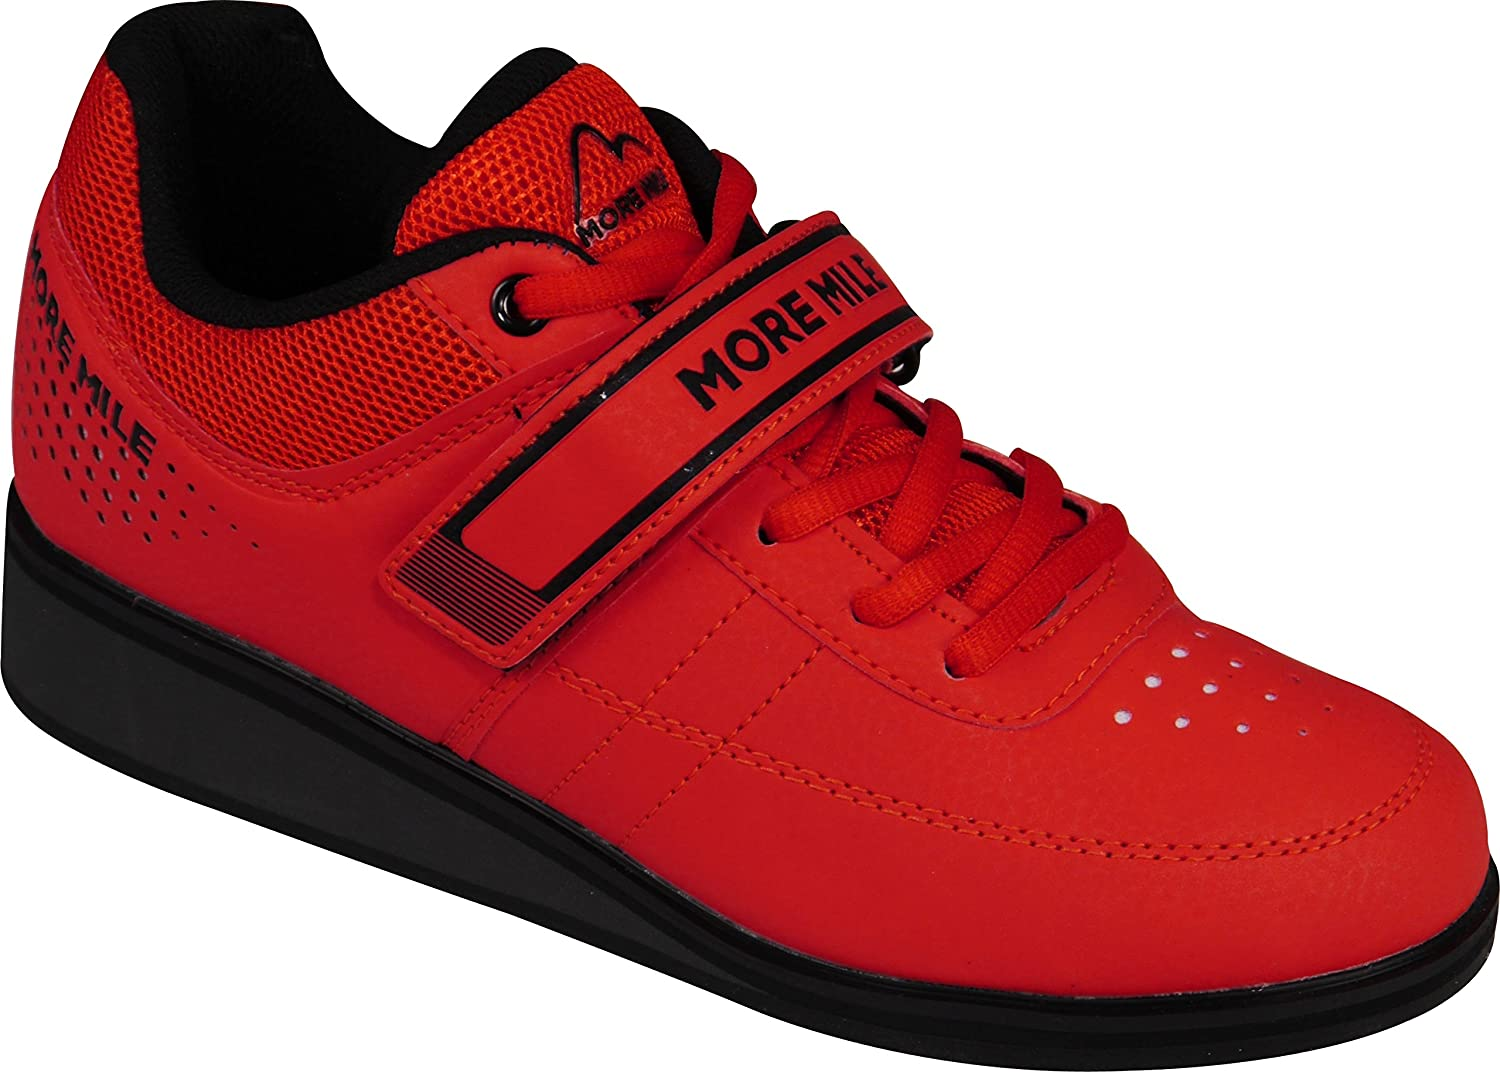 416dcca2d9f16e Amazon.com  More Mile More Lift 4 Weight Lifting Cross Fit Shoes - Red   Sports   Outdoors